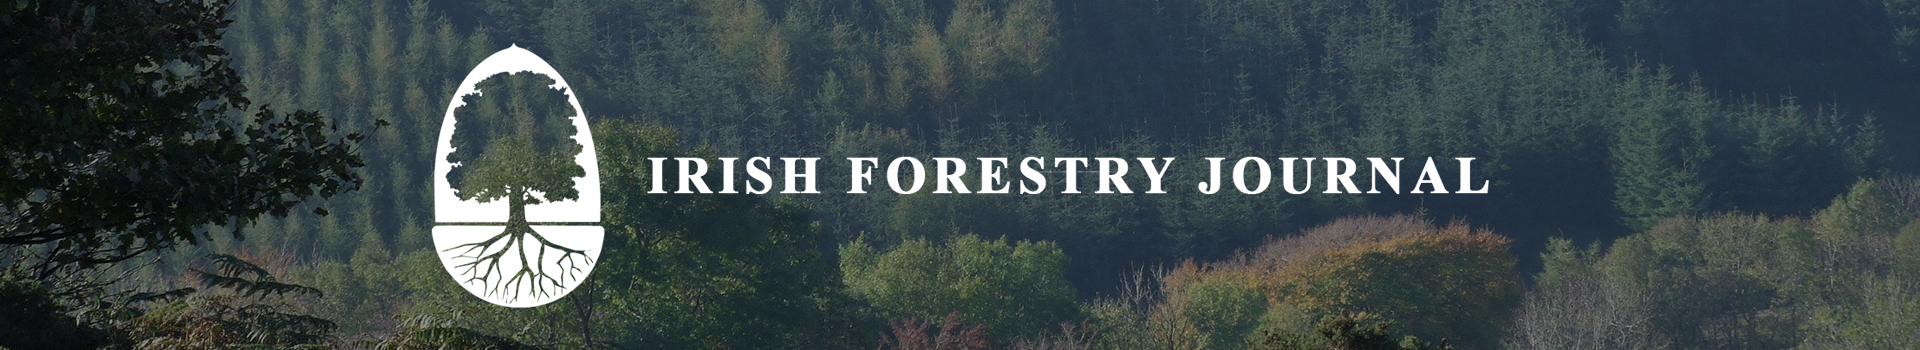 Irish Forestry -Journal of the Society of Irish Foresters